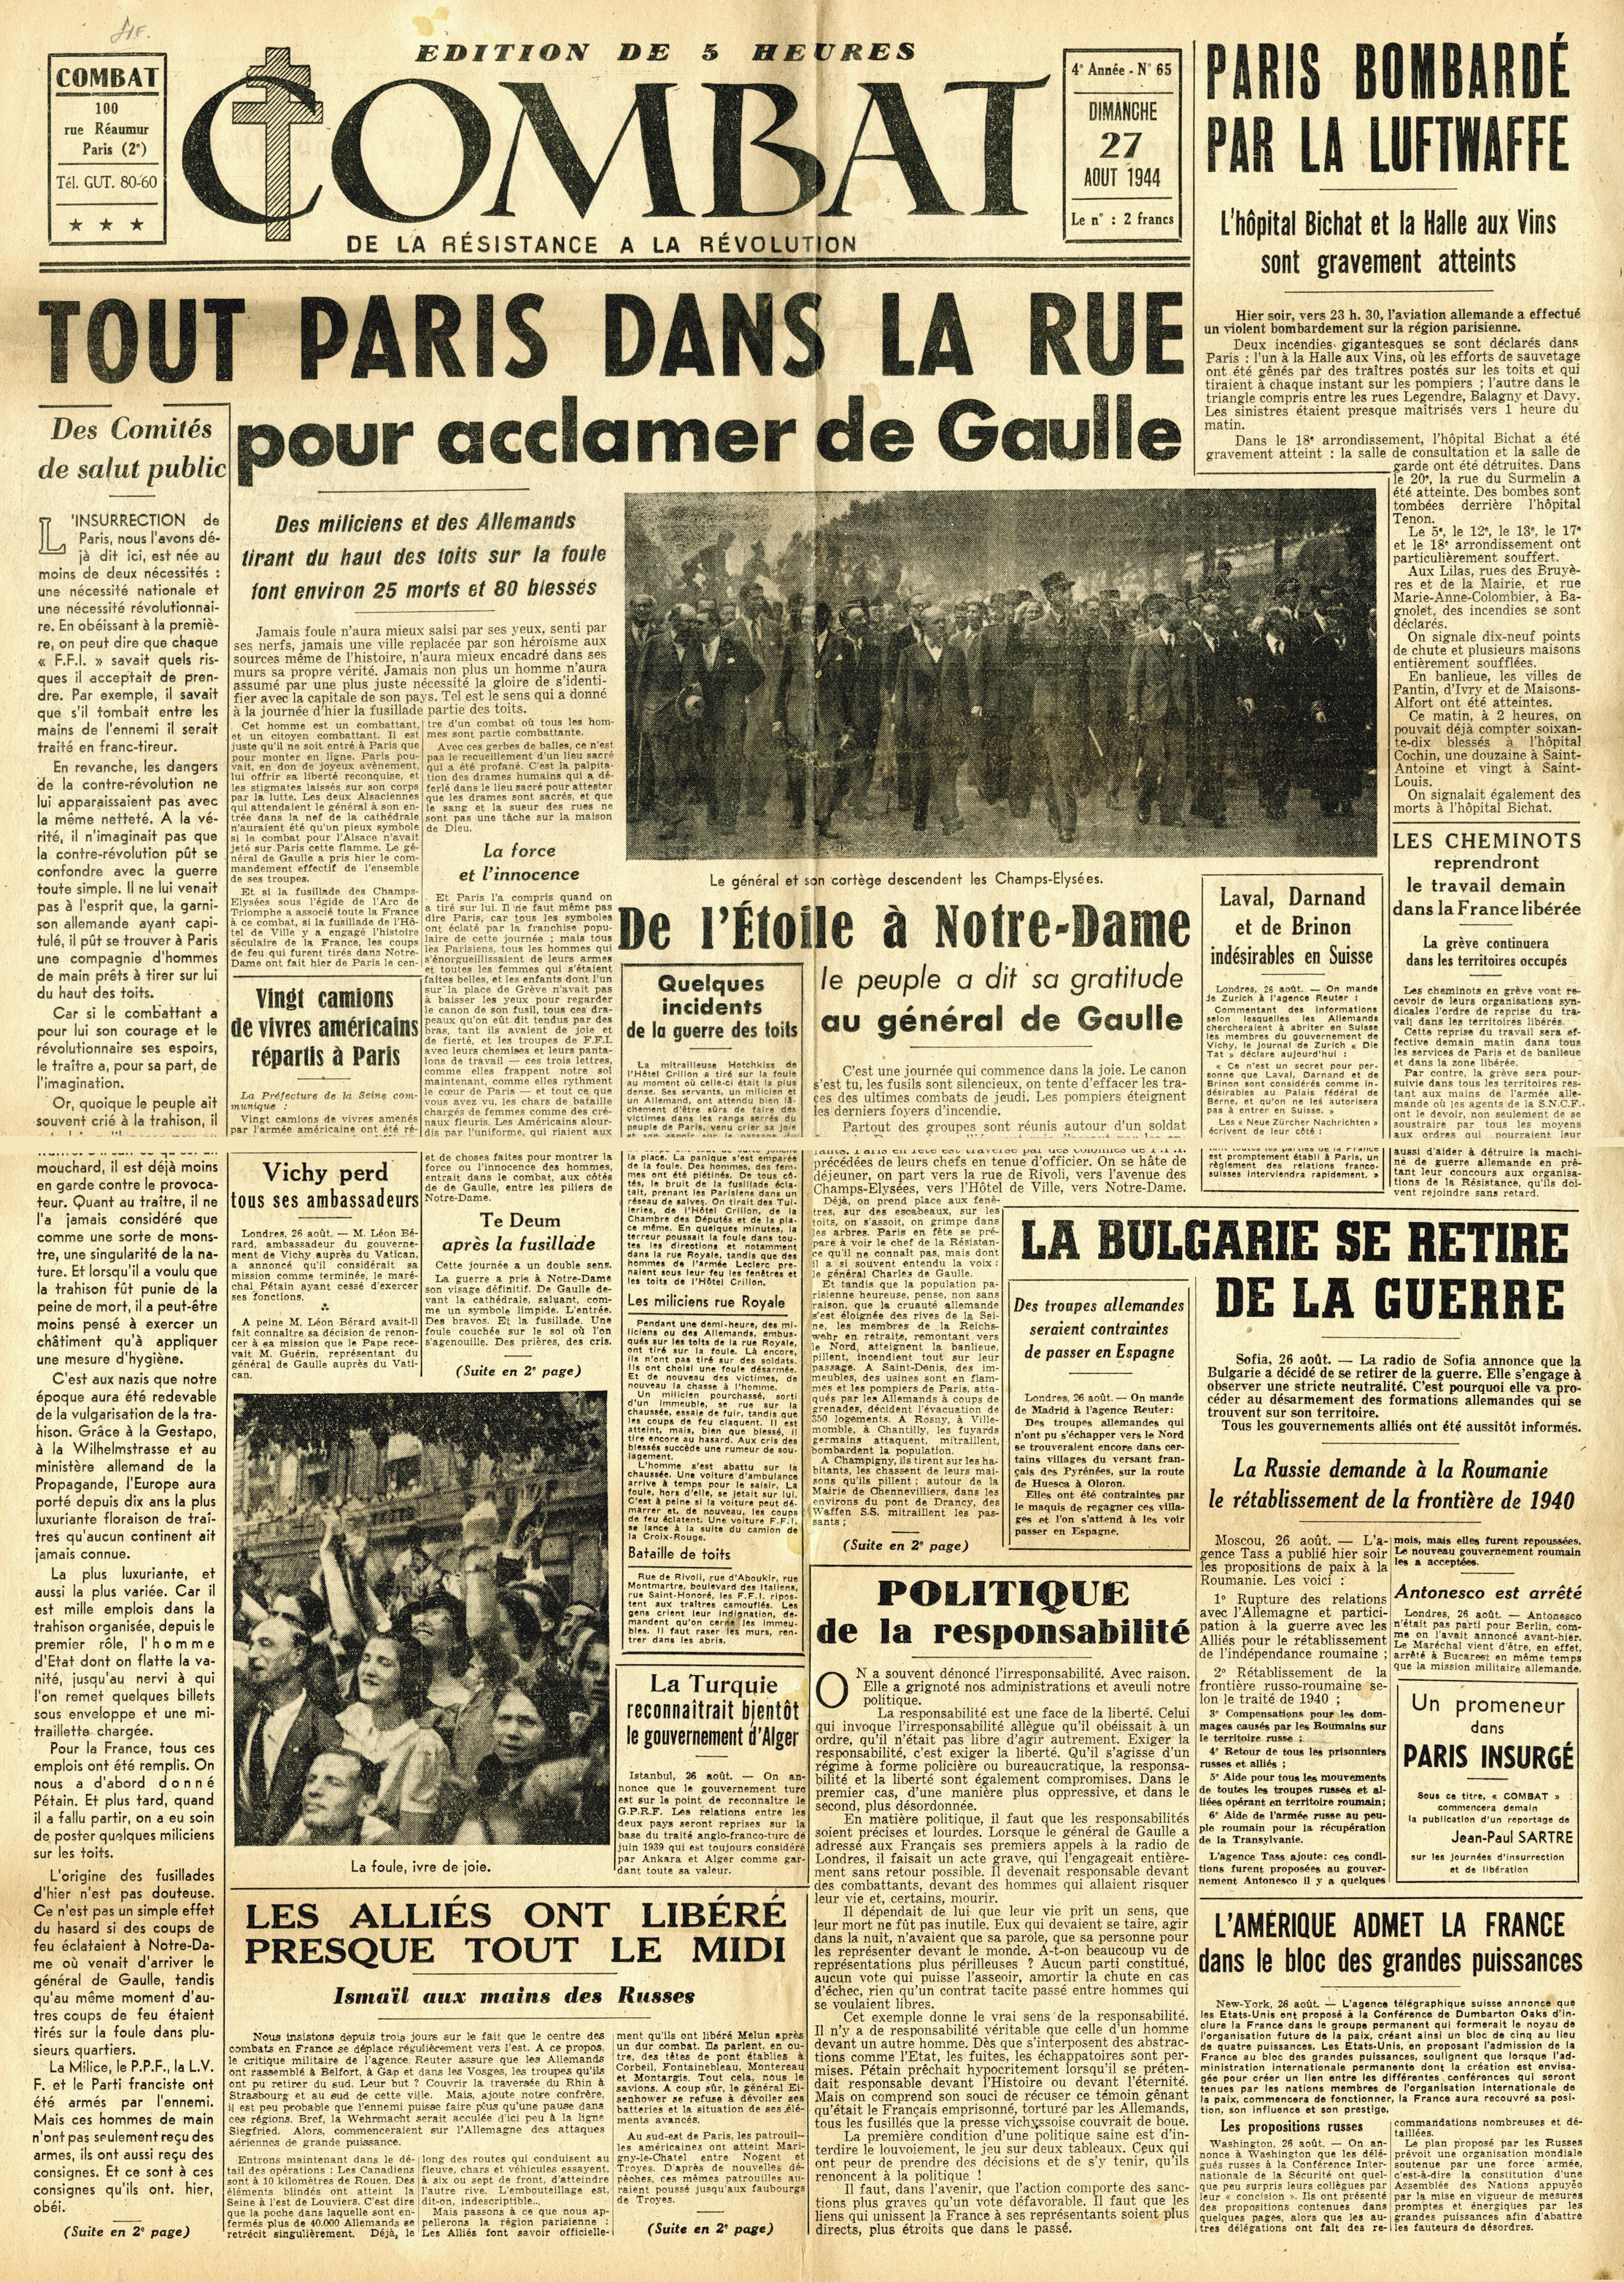 Combat  issue number 65,  August 27, 1944.  The headline heralds the victory parade of de Gaulle and the Allies in the streets of Paris. This is the first issue disclosing Camus' role as editor. (Author's collection)